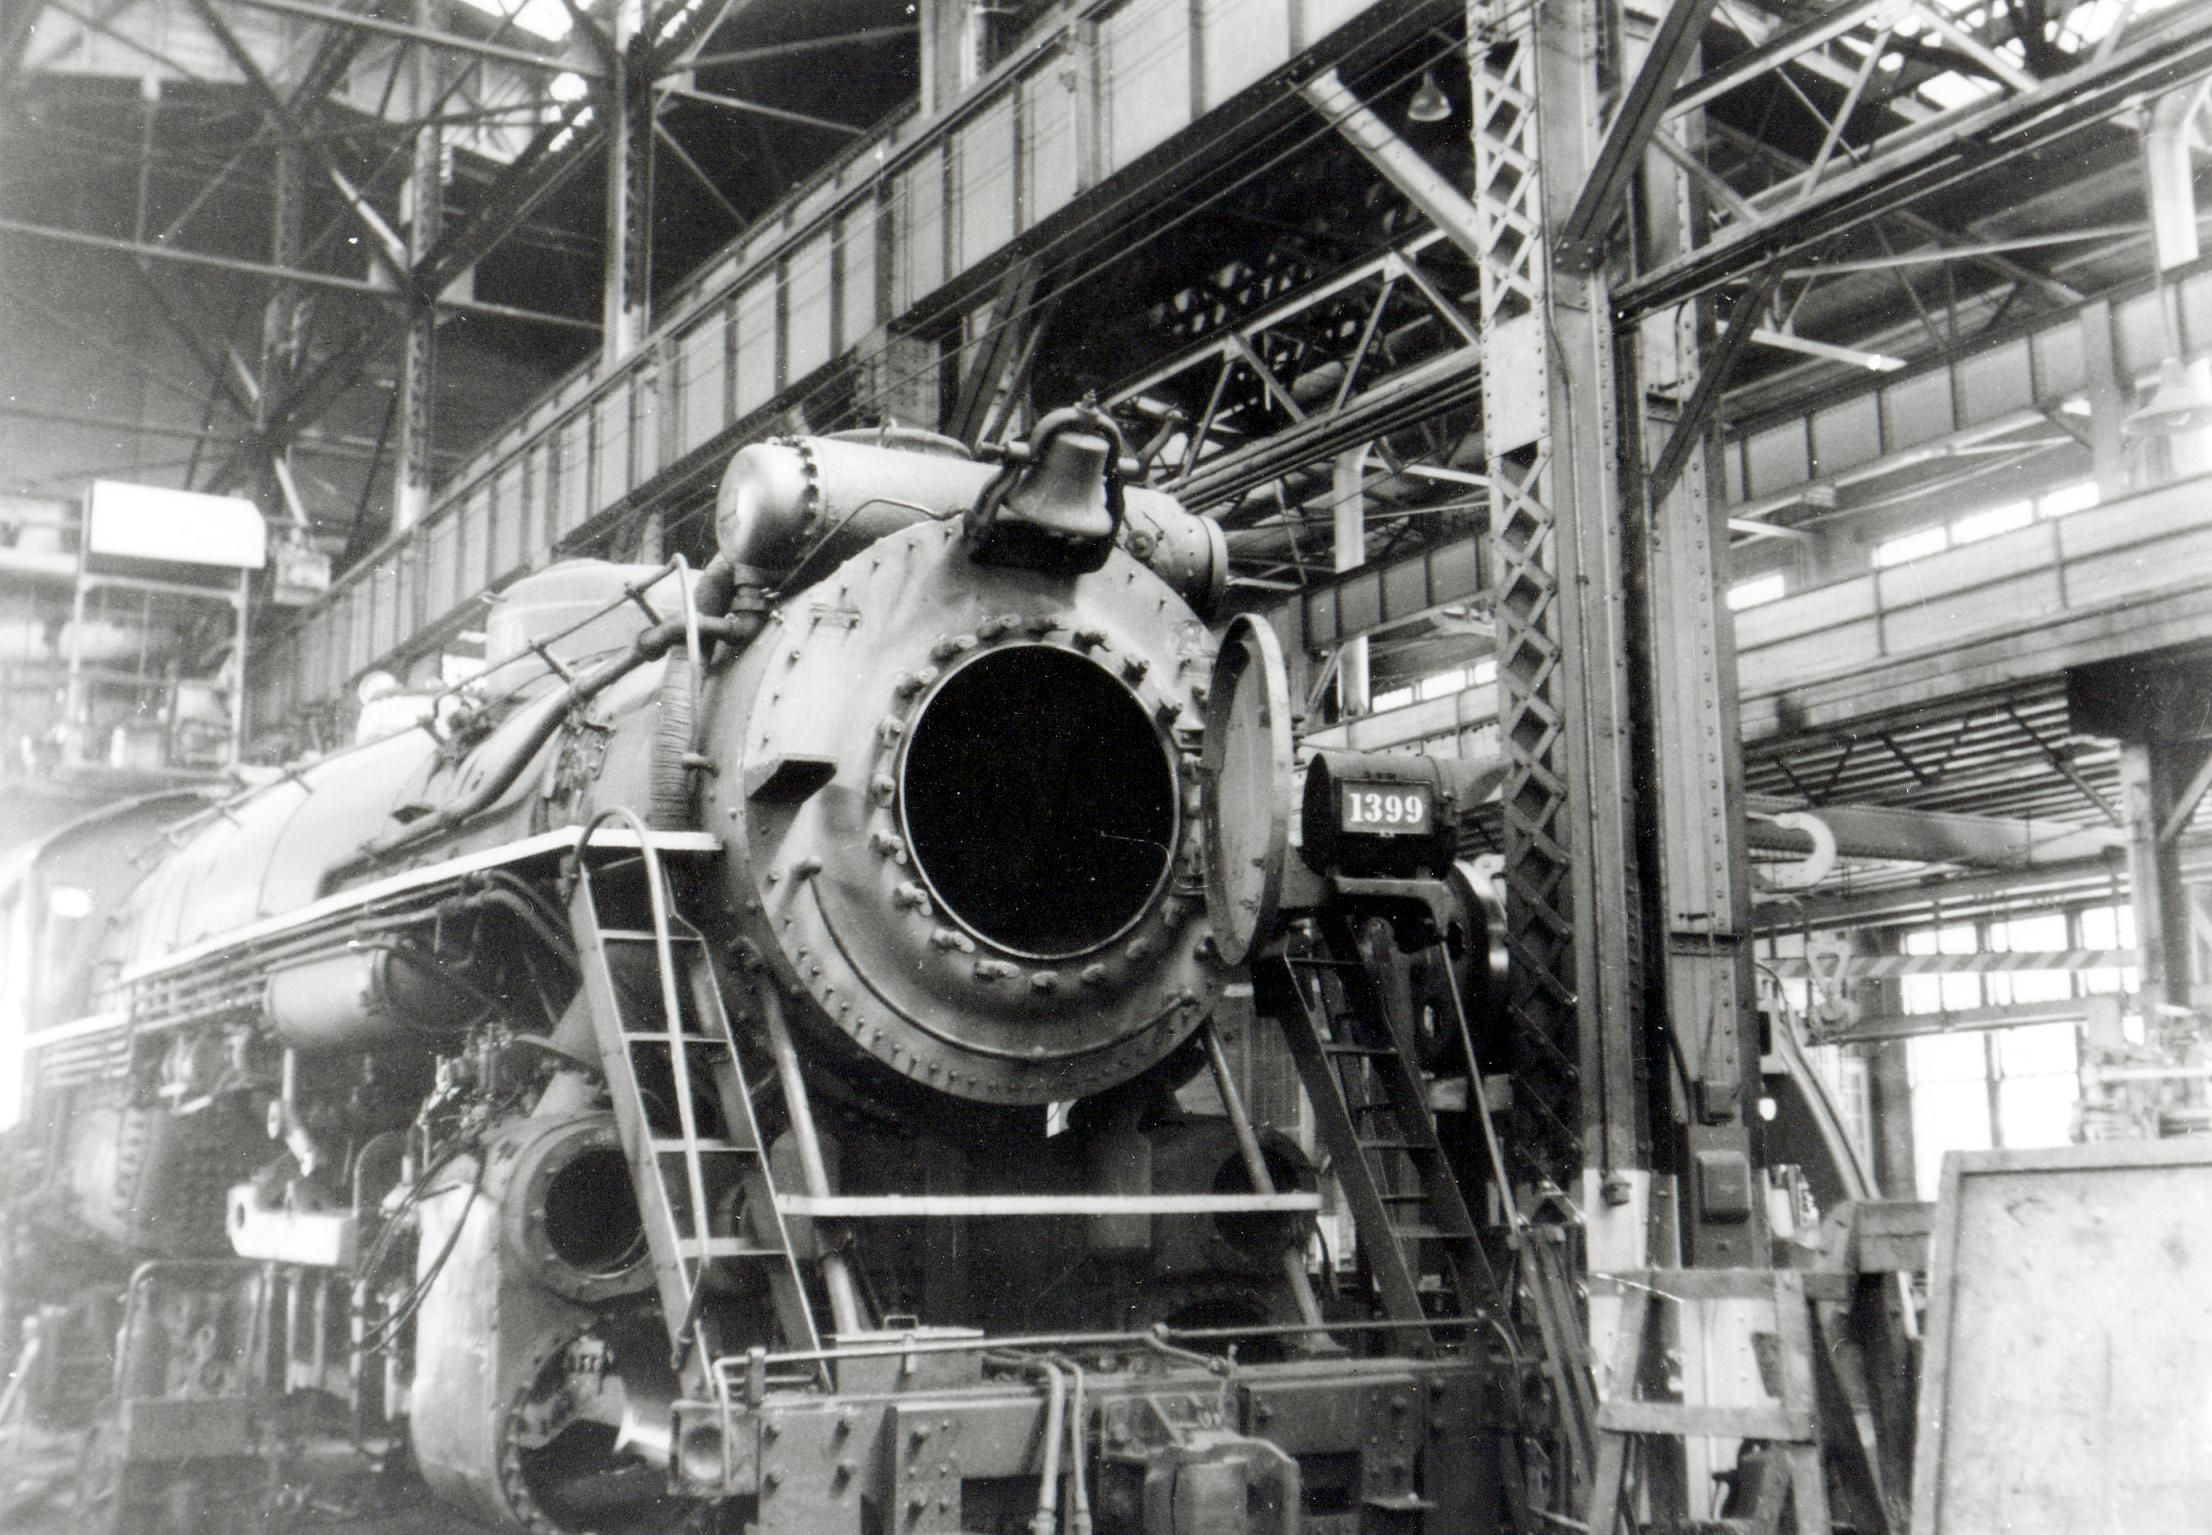 The overhaul of a steam lo otive in the Back Shop of Southern